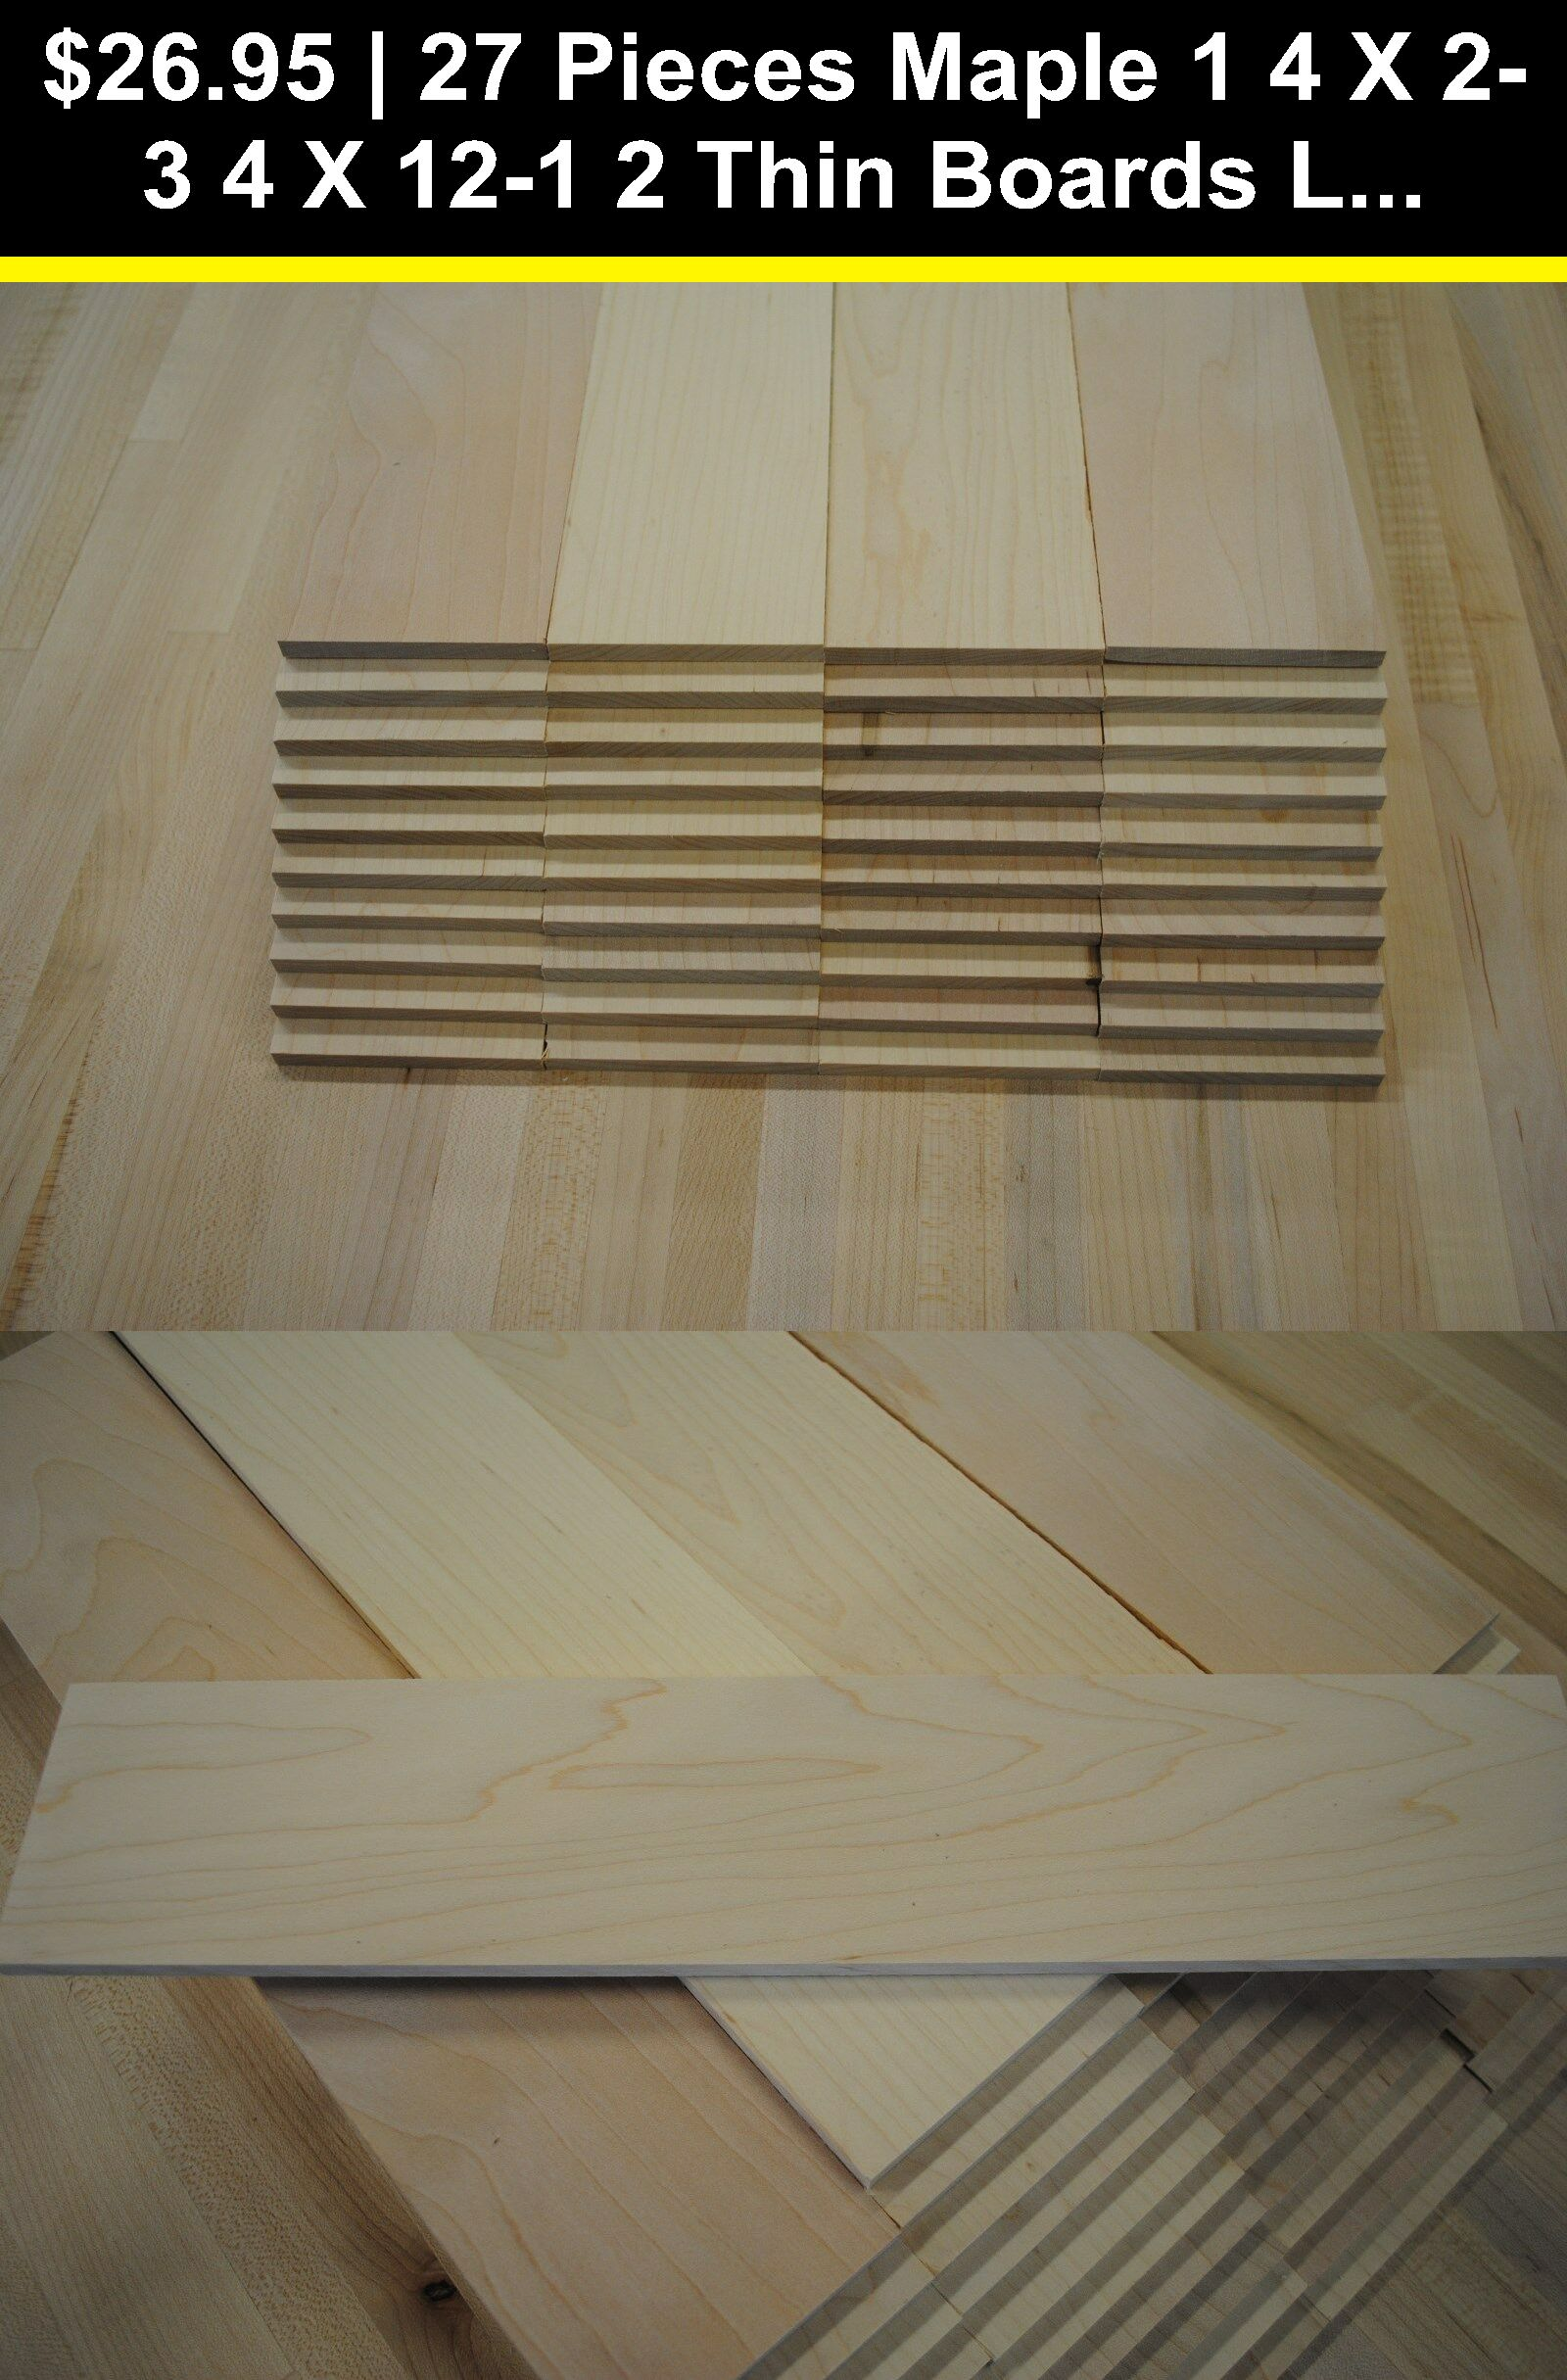 Woodworking Lumber 84011 27 Pieces Maple 1 4 X 2 3 4 X 12 1 2 Thin Boards Lumber Wood Crafts Buy It Now Only 26 95 On Wood Crafts Lumber Diy Knife Handle